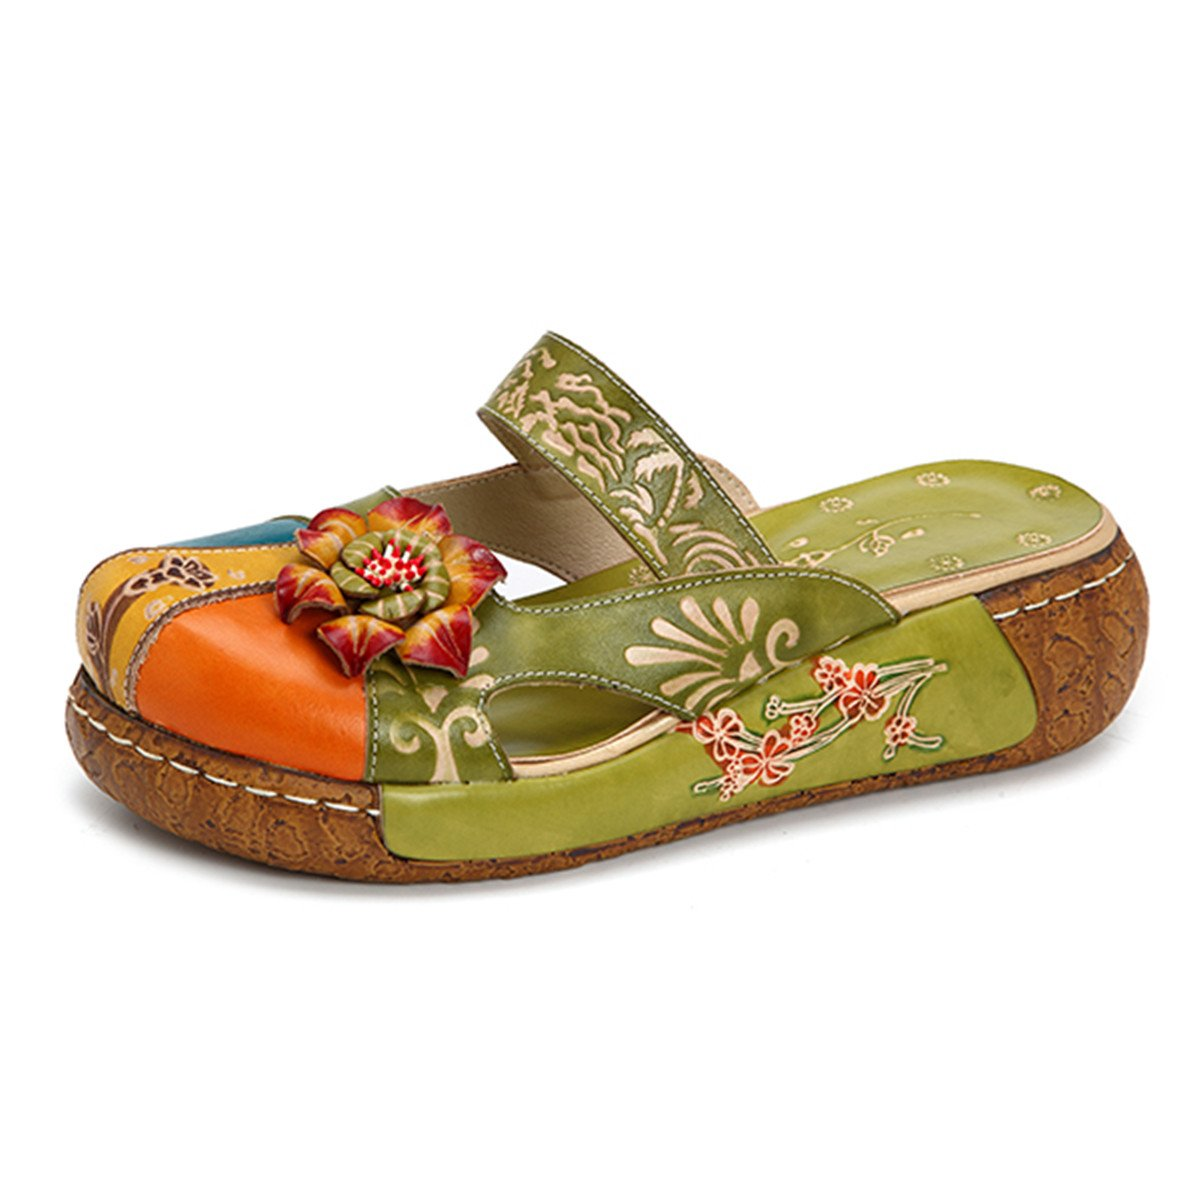 Gracosy Leather Slipper, Women's Leather Oxford Slipper Vintage Slip-Ons colorful Flower Backless Loafer Shoes Green 36 EU